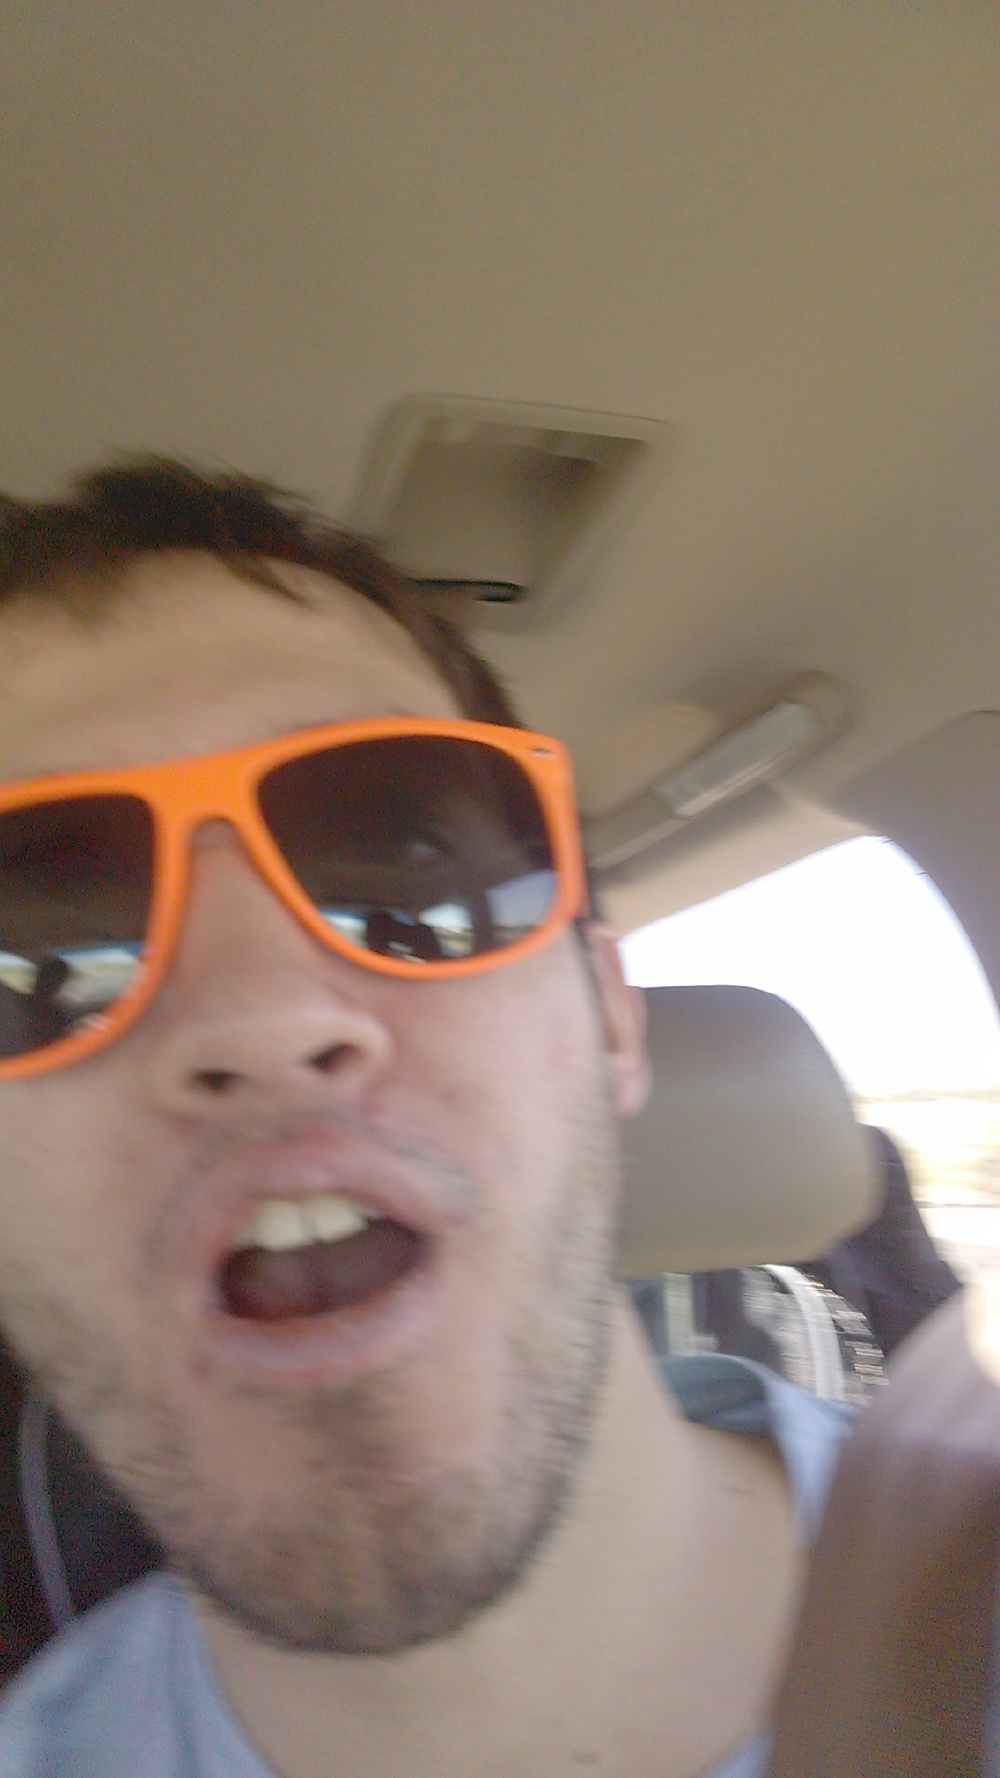 Never roadtrip without sunglasses. Bright, obnoxious, orange sunglasses. Definitely take selfies while driving.